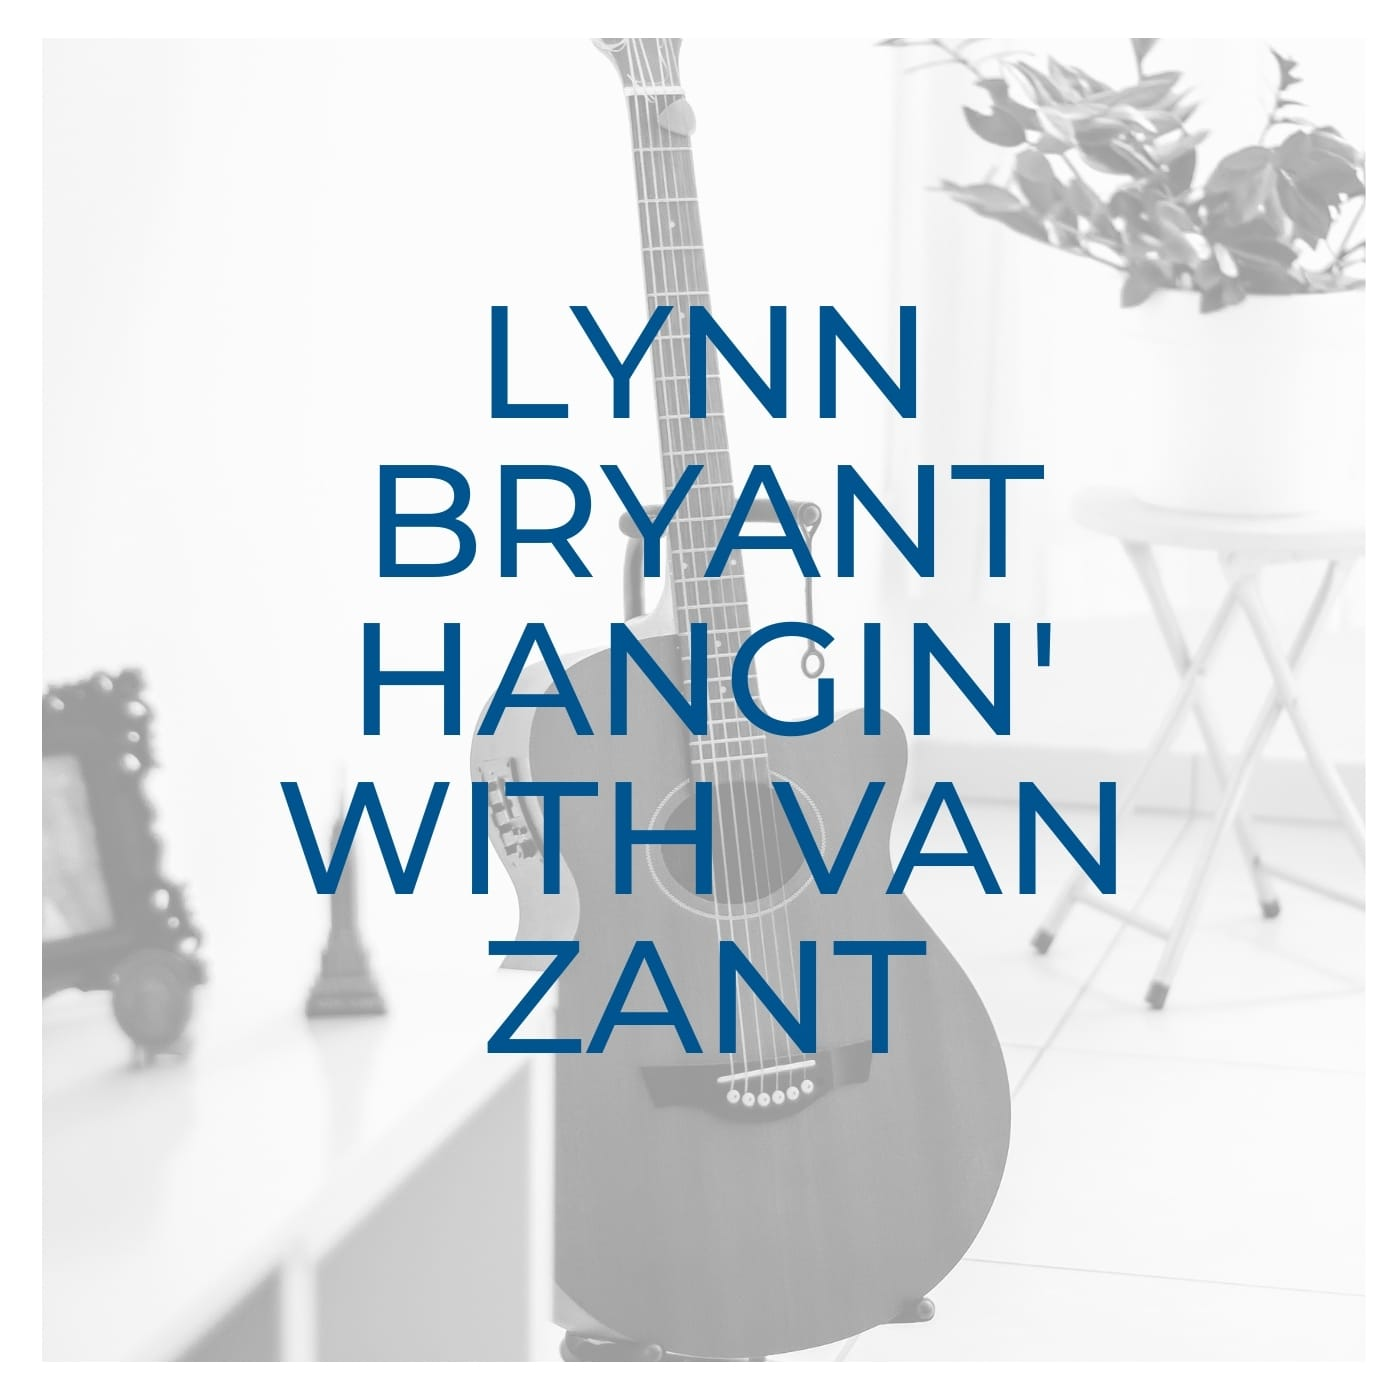 Lynn Bryant Hangin' With Van Zant at Sirius Satellite Radio Studios in New York